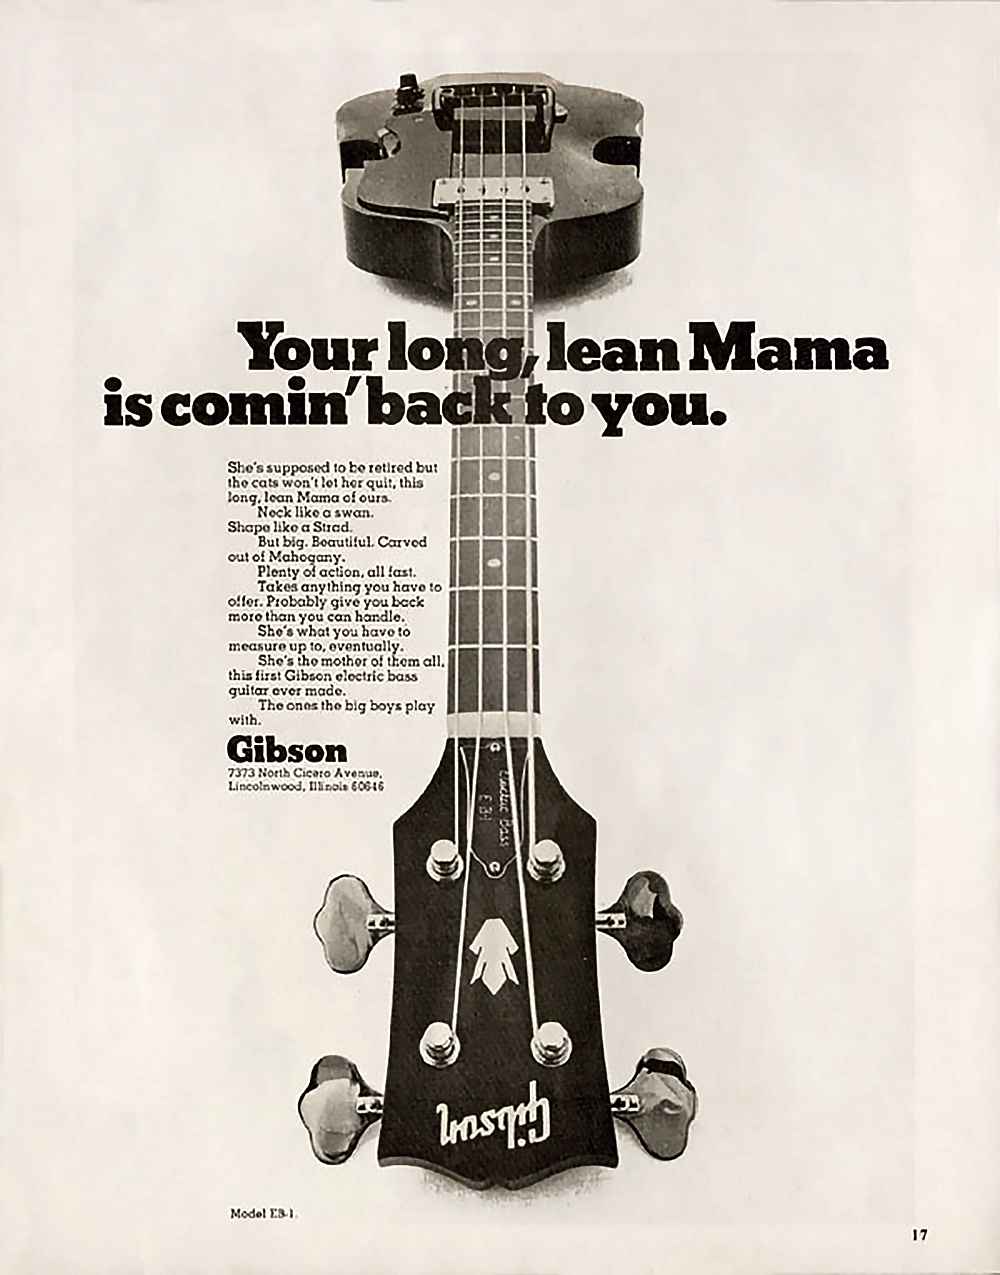 Gibson marketing AD from 1969